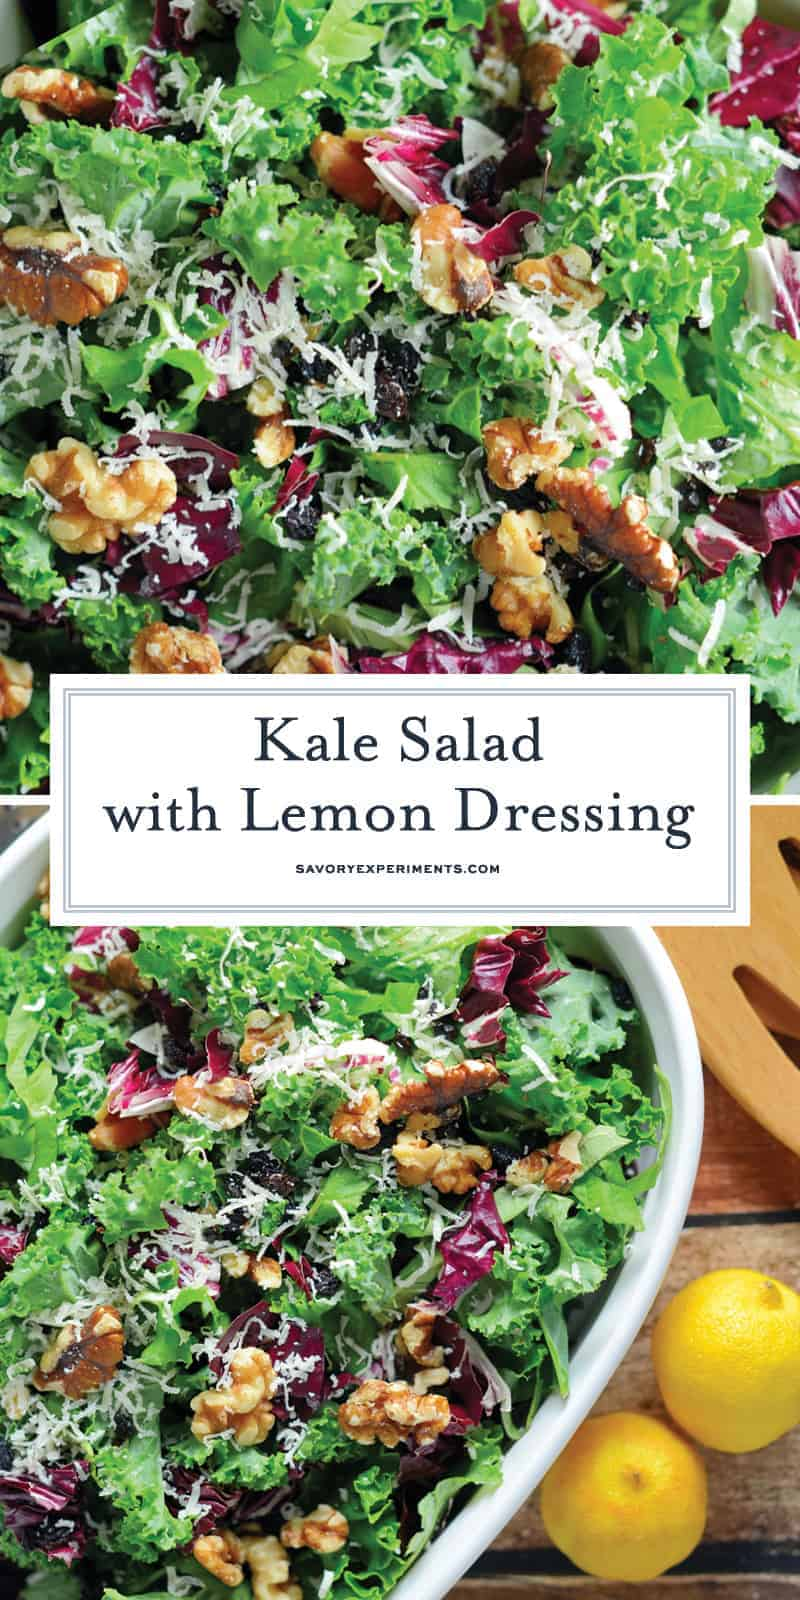 Kale Salad with Lemon Dressing is tossed with currants, radicchio, walnuts and a lemon dressing. Learn how to massage kale salad and make a delicious salad! #kalesaladrecipes #kalesaladdressing www.savoryexperiments.com